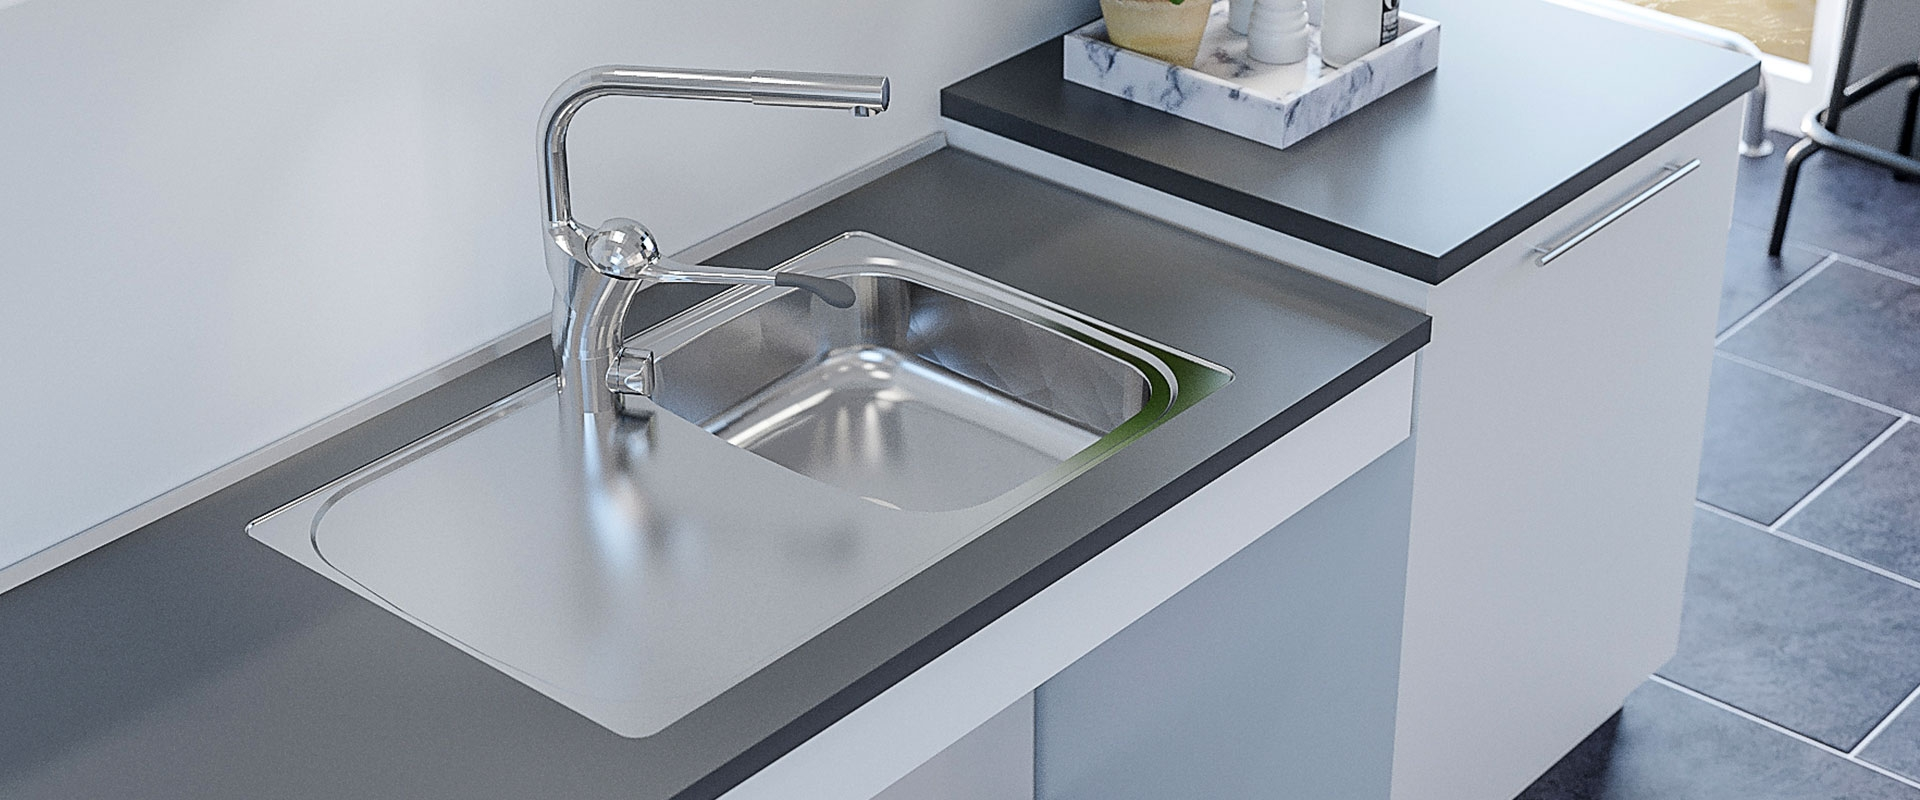 Inset Kitchen Sink ES15- 76.6 cm